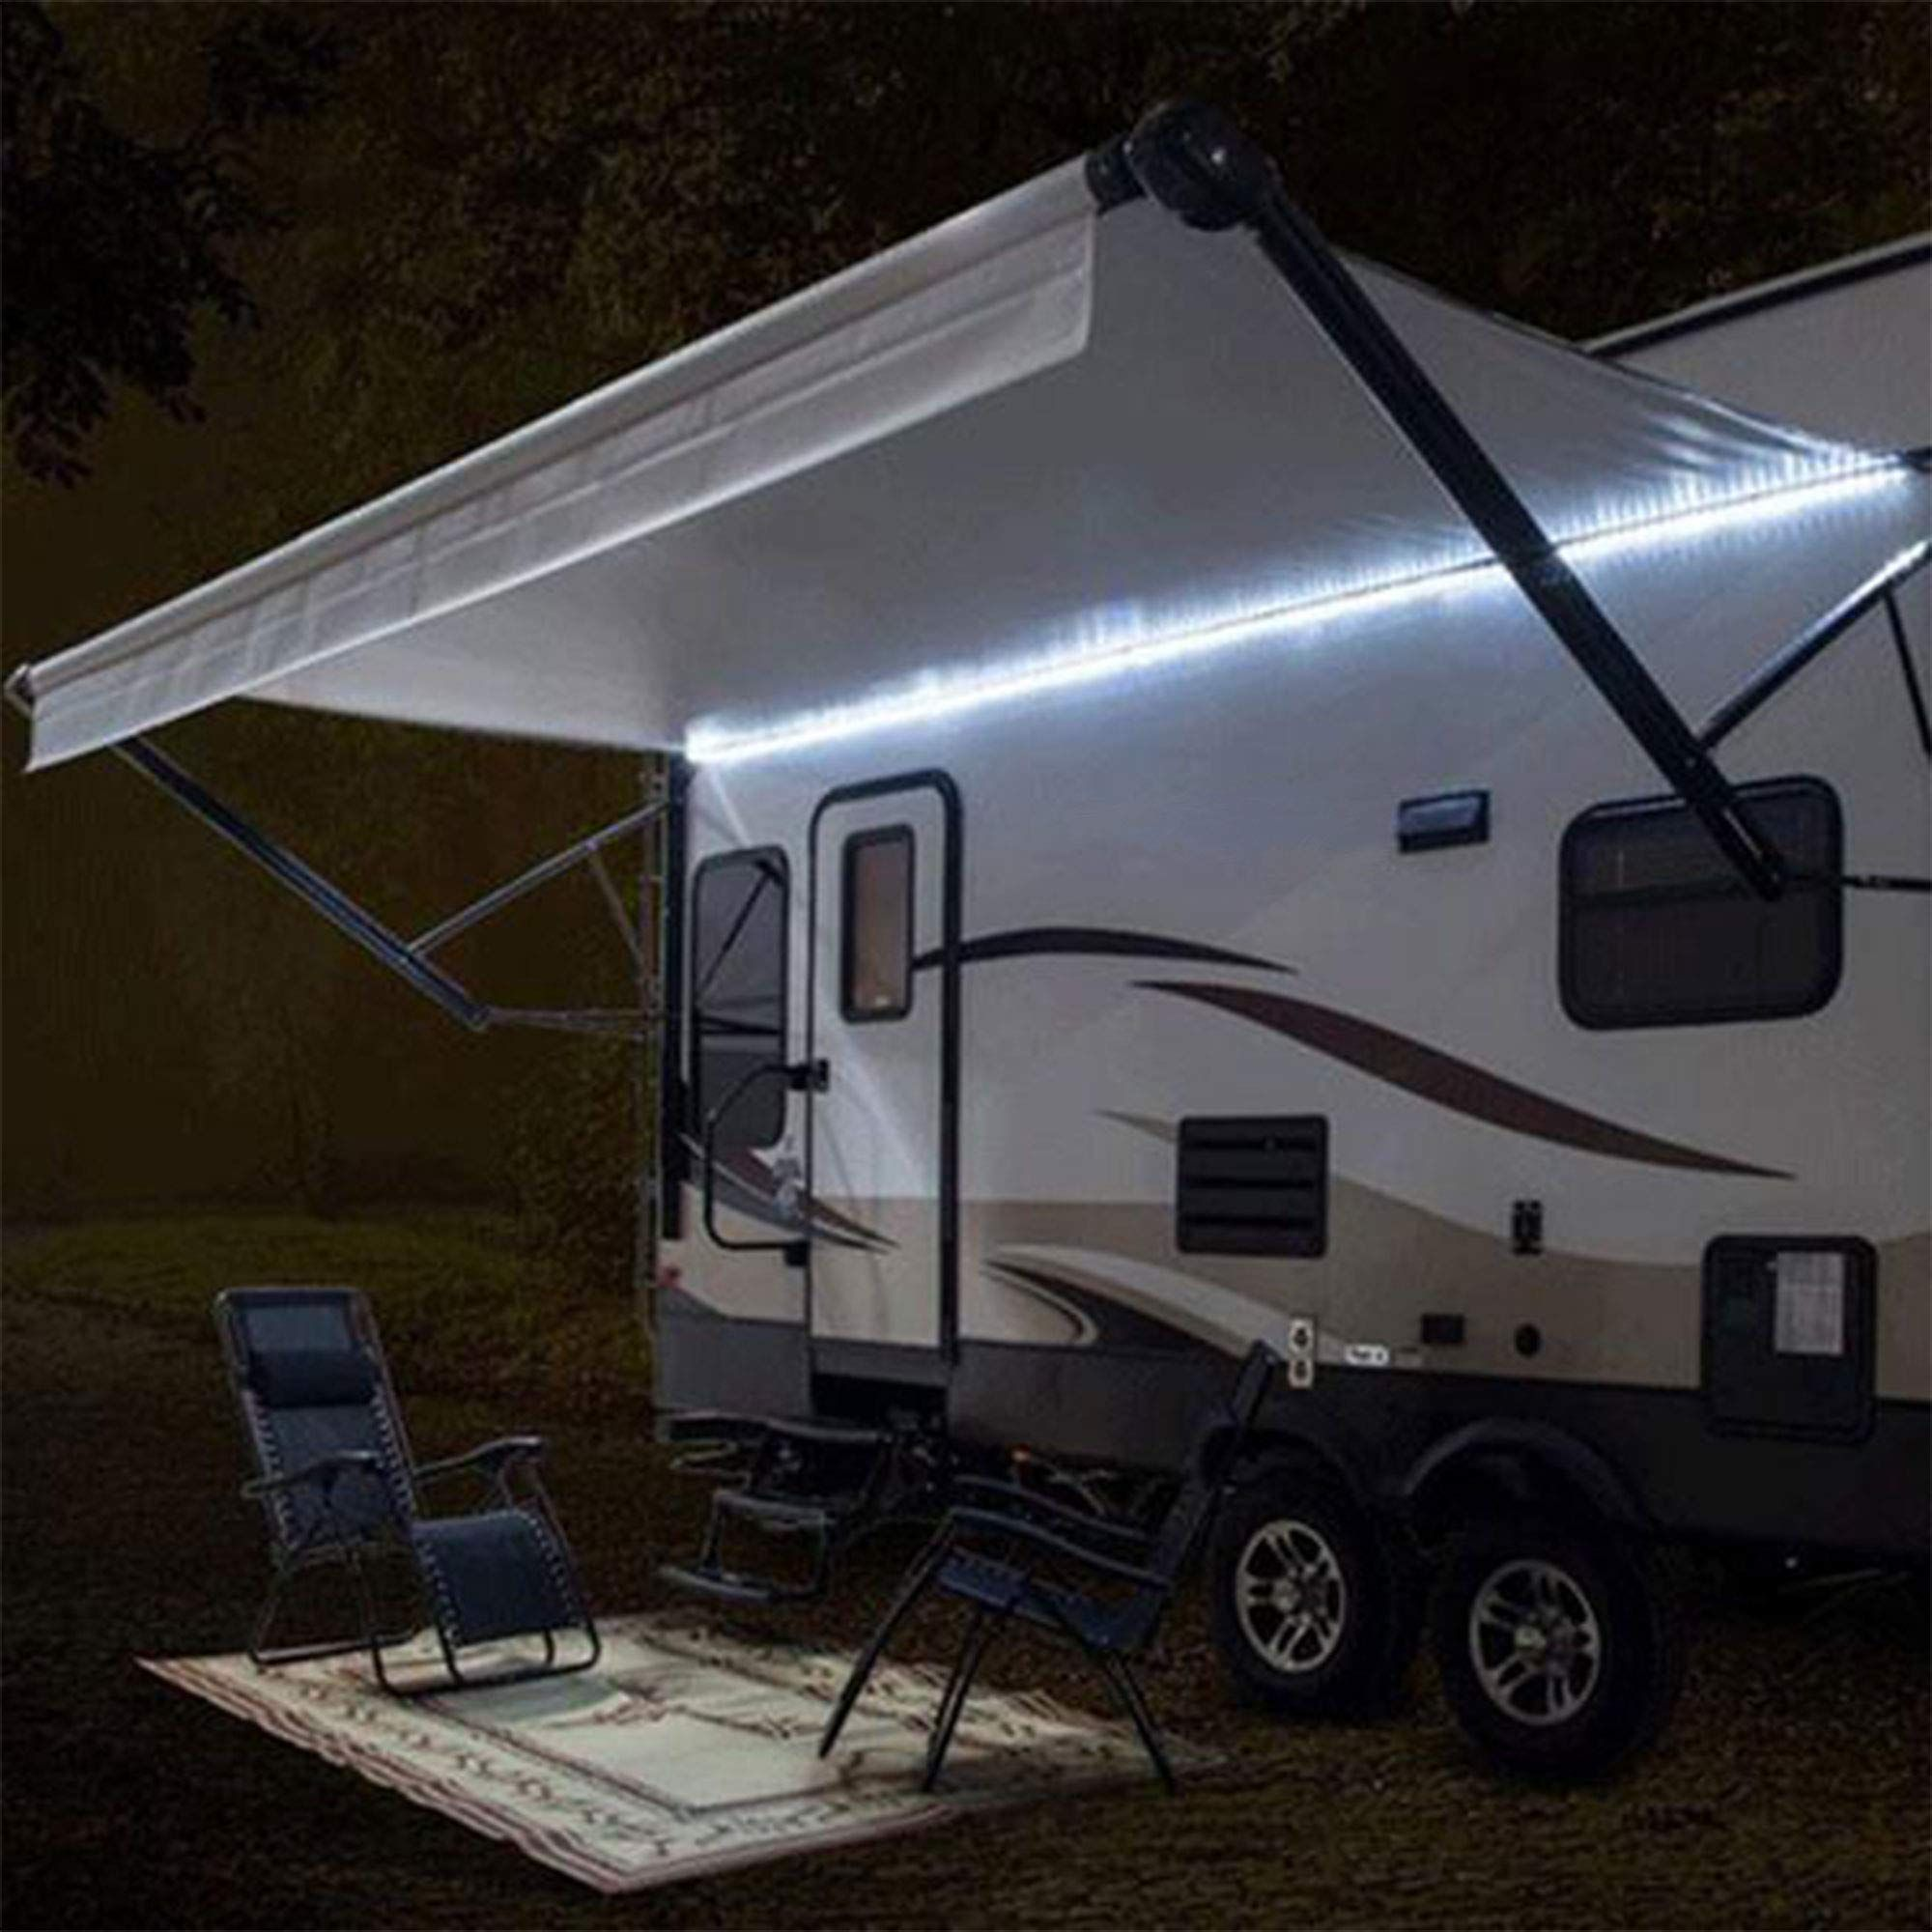 Recpro Rv White Led Awning Party Light W Mounting Channel And Black Pcb 12v Light 12 To View Furth In 2020 Rv Campers Motorhome Travel Trailer Motorhome Travels